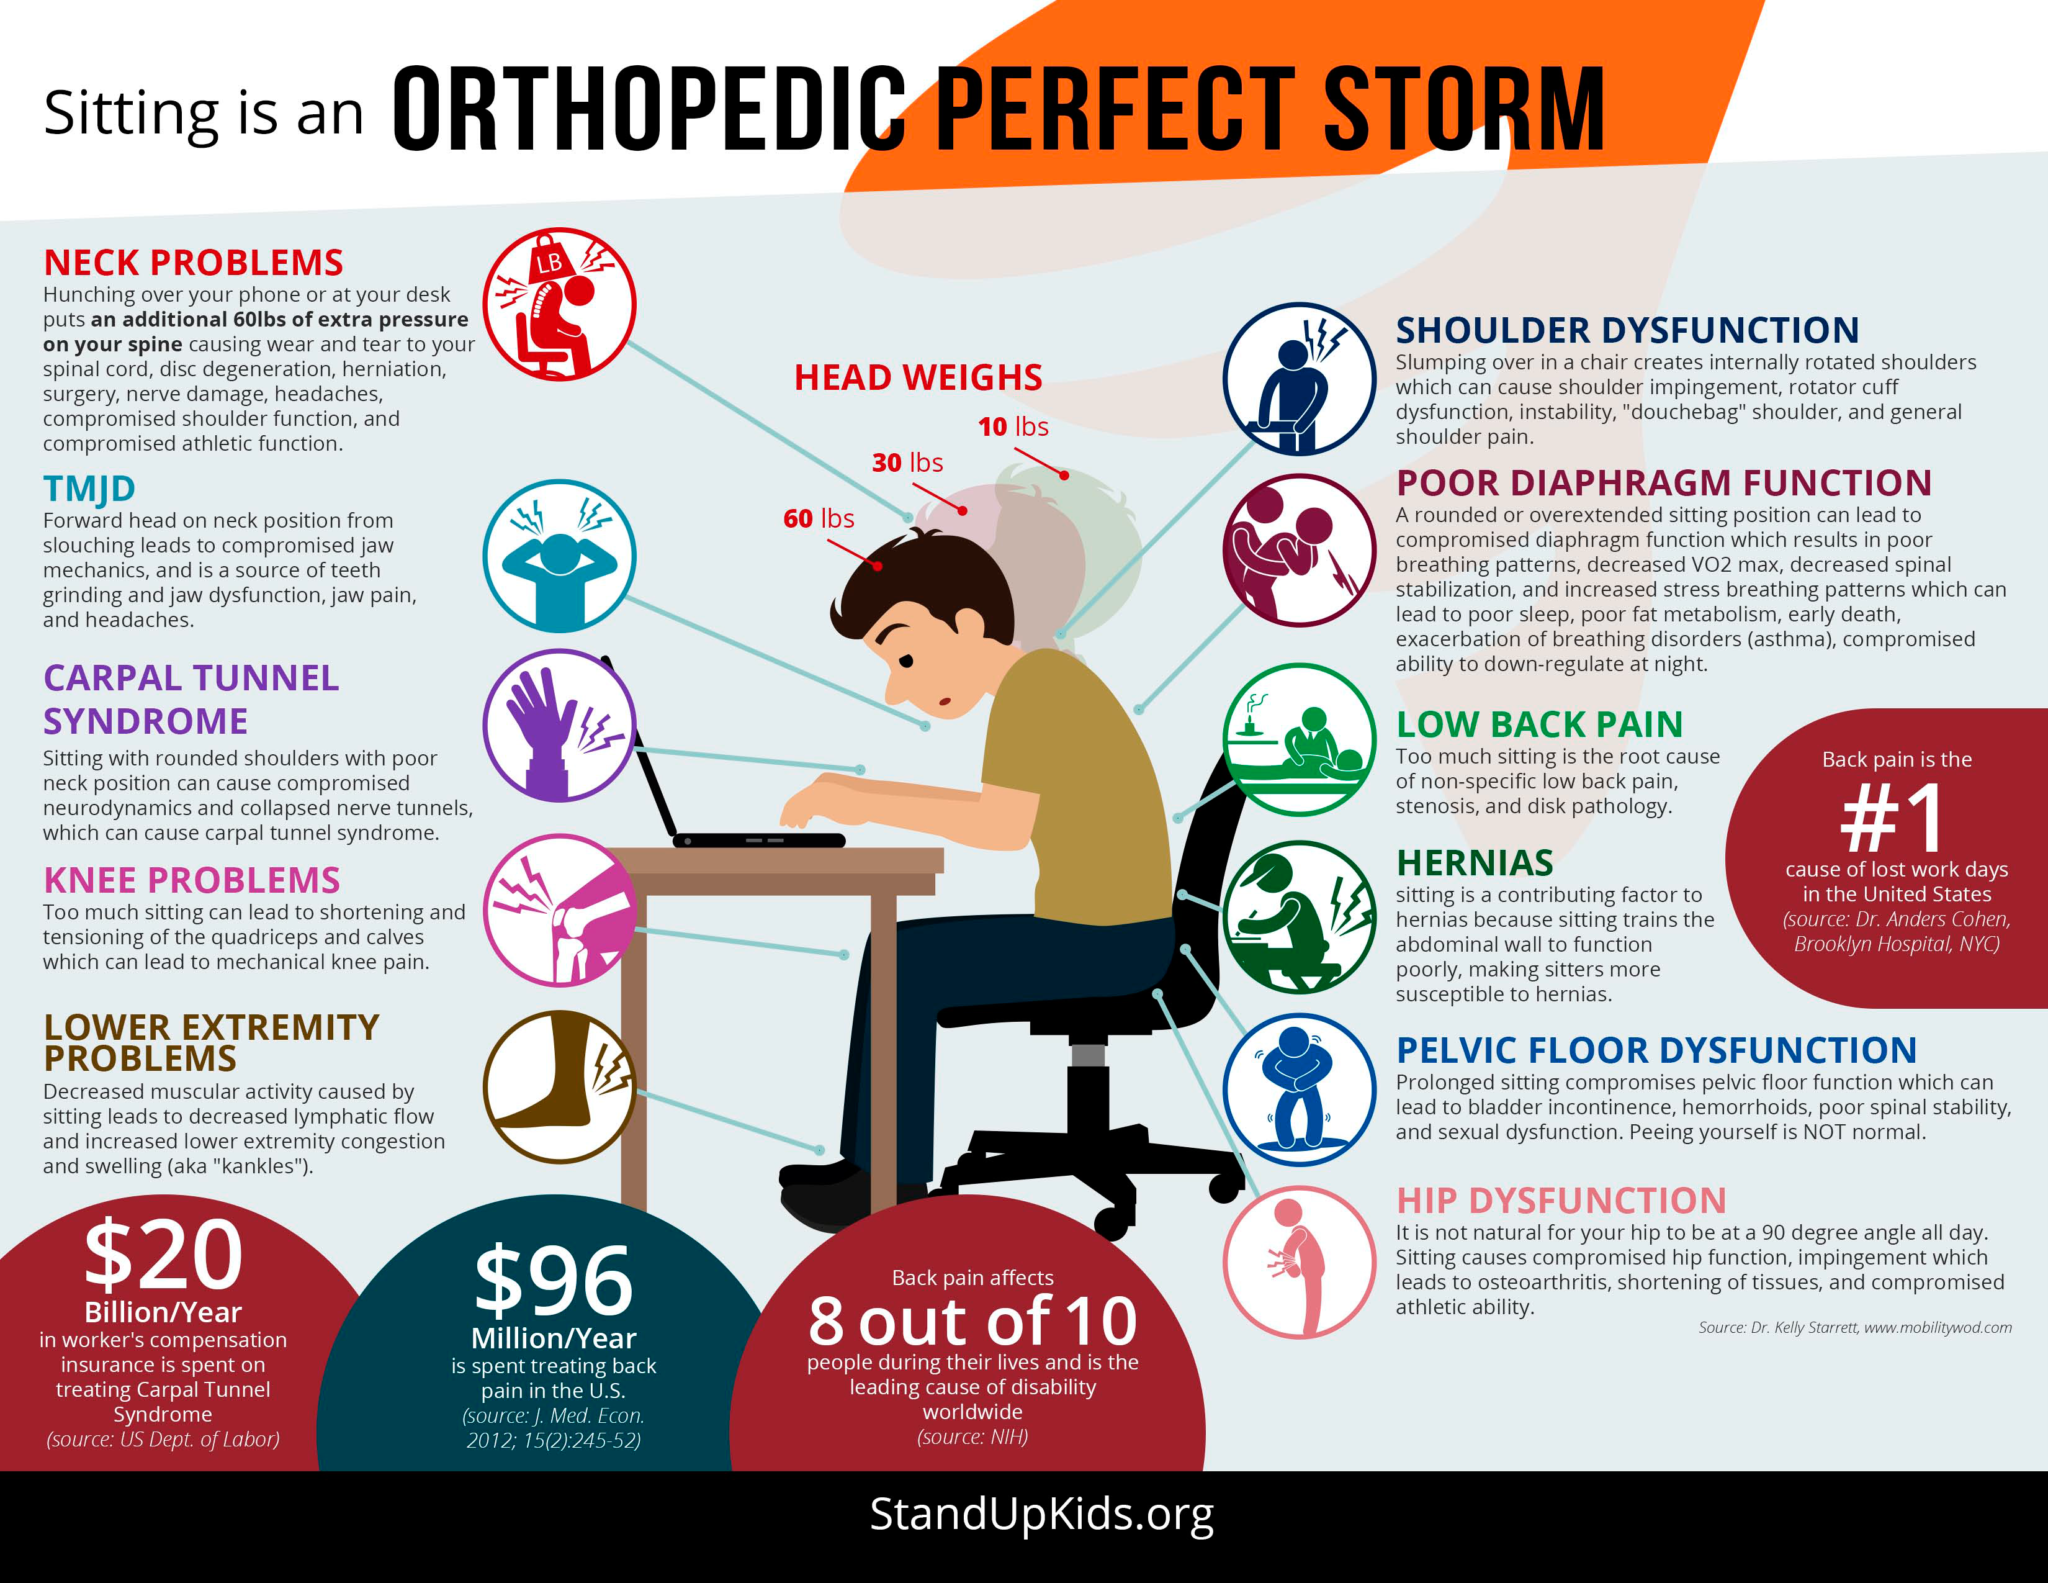 How to sit with good posture: Sitting is an orthopedic perfect storm - StandUpKids.org